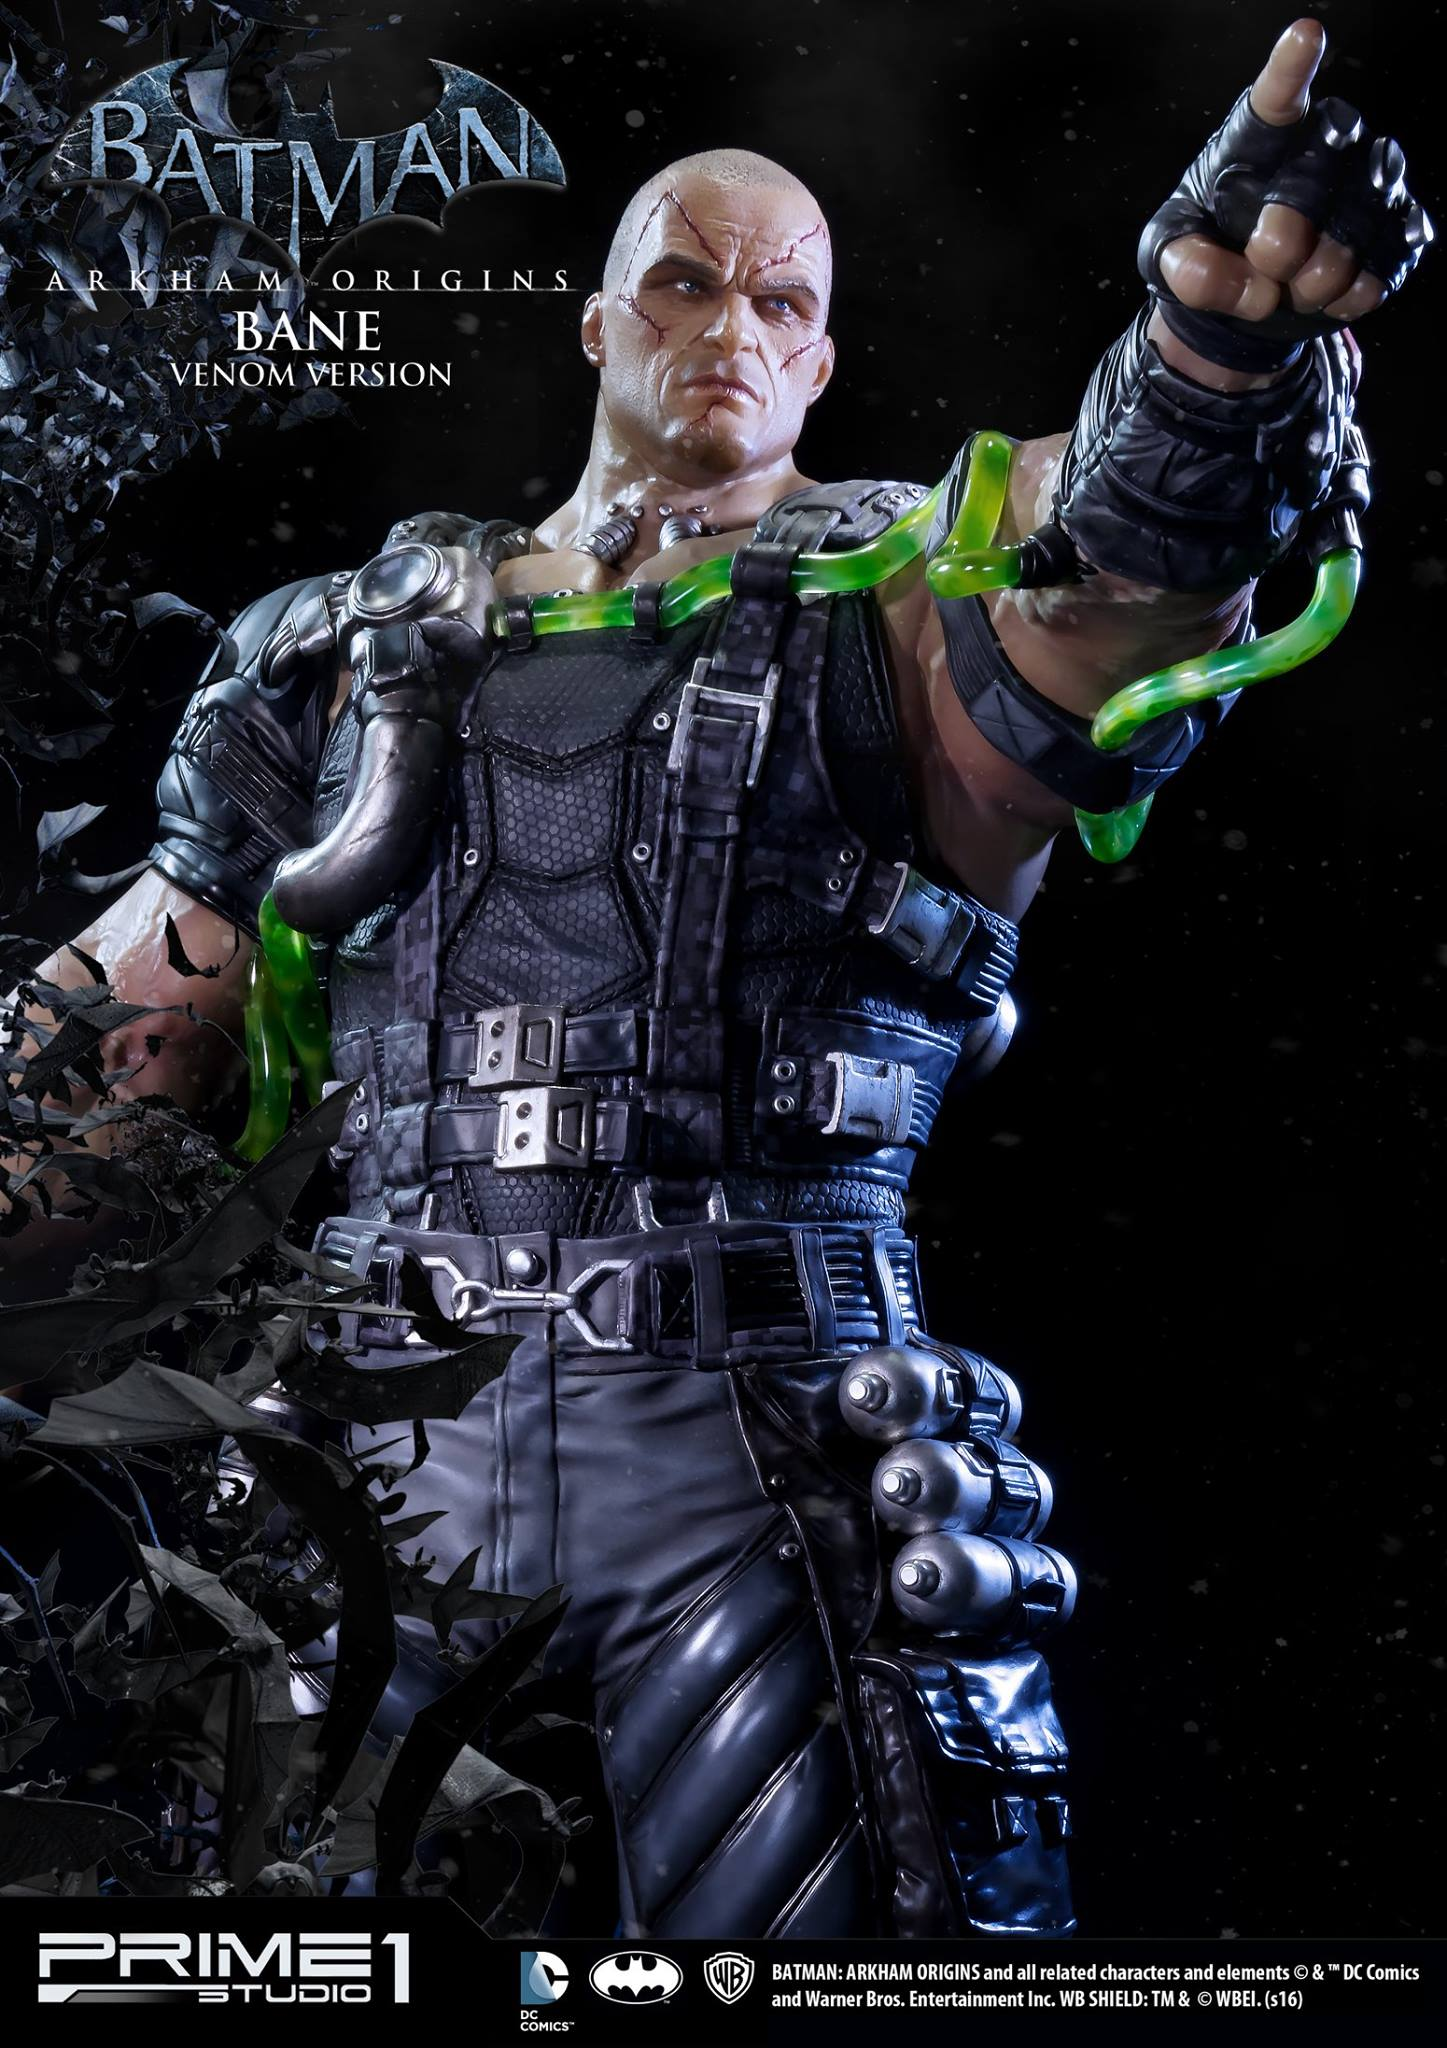 photos and details for arkham origins bane statues by